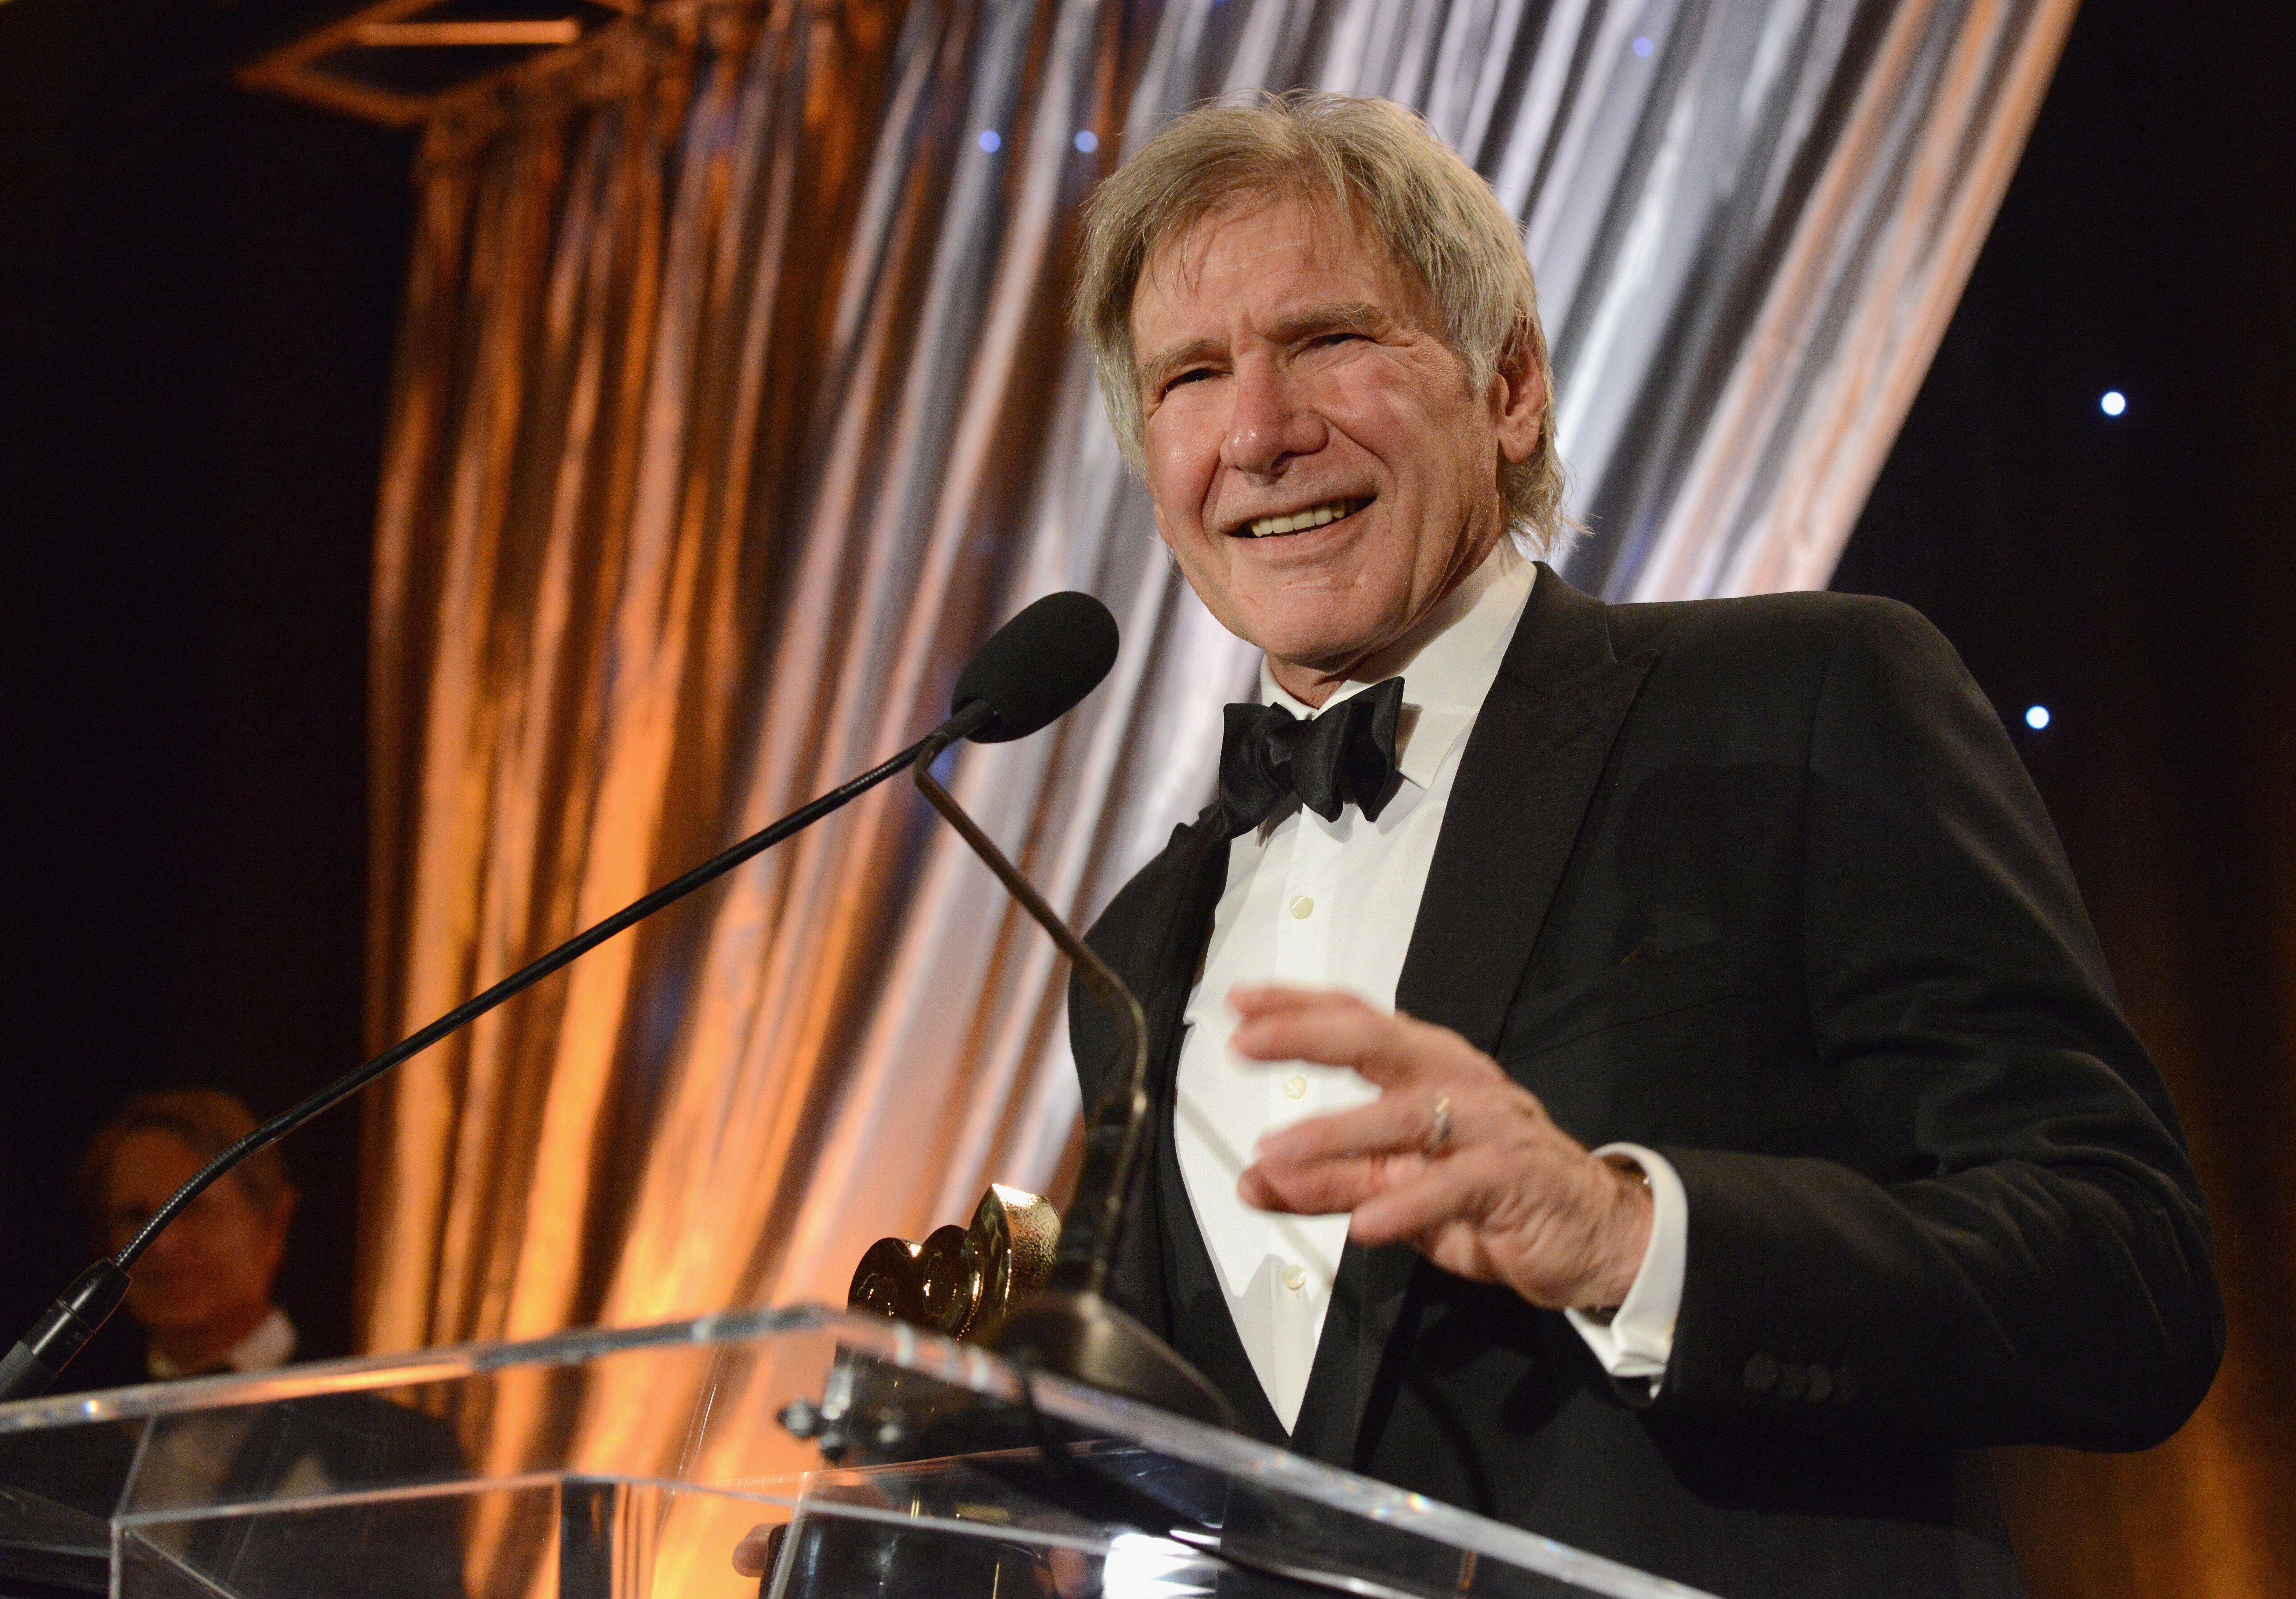 HOLLYWOOD, CA - JANUARY 26: Actor Harrison Ford accepts the SOC President's Award at The Society Of Camera Operators 40th Annual Lifetime Achievement Awards held at Loews Hollywood Hotel on January 26, 2019 in Hollywood, California. (Photo by Albert L. Ortega/Getty Images)